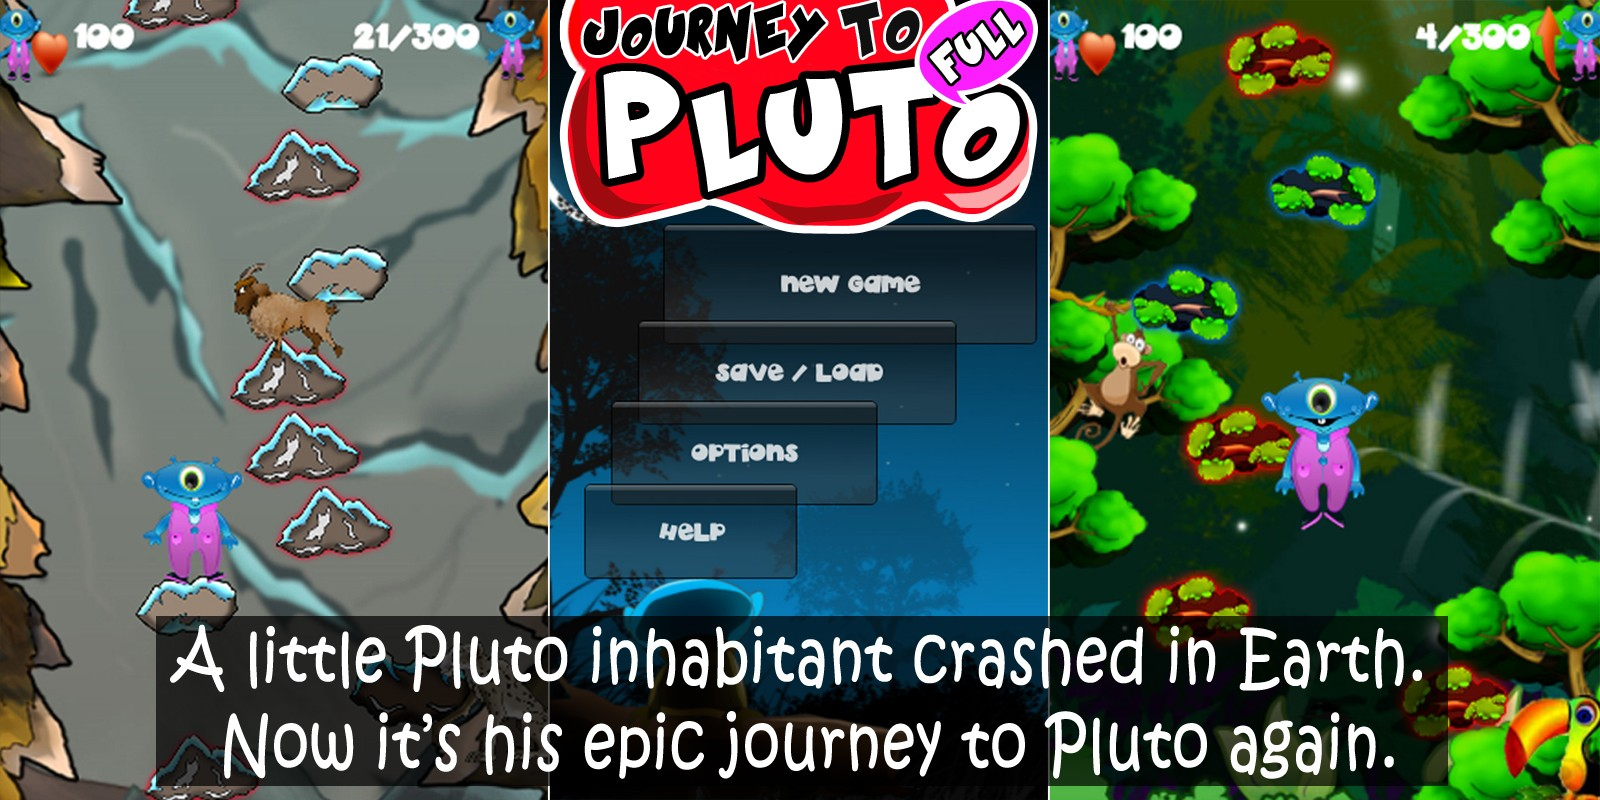 Journey To Pluto - Complete Unity 3D Game